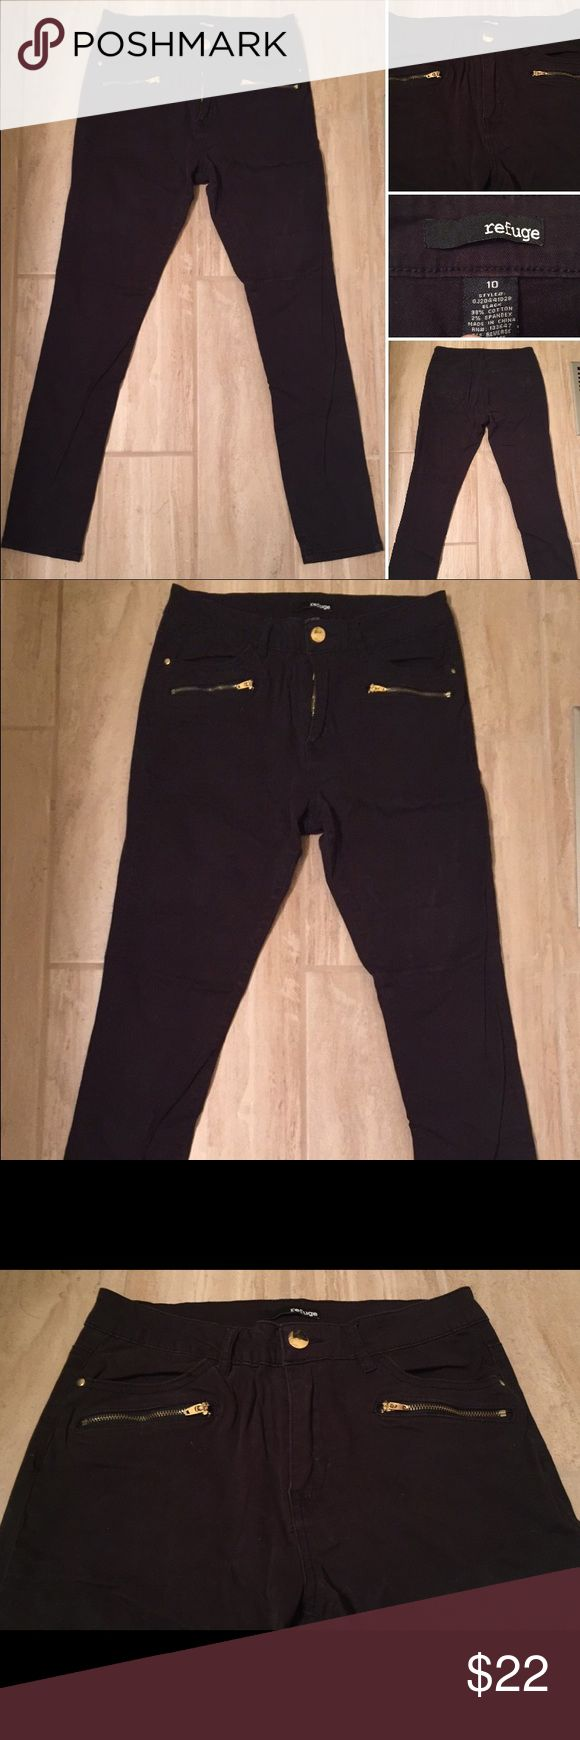 High Waisted Black Jeans High Waisted Black Jeans. Gold zippers and buttons. Could fit a size 8 or 10. Jeans